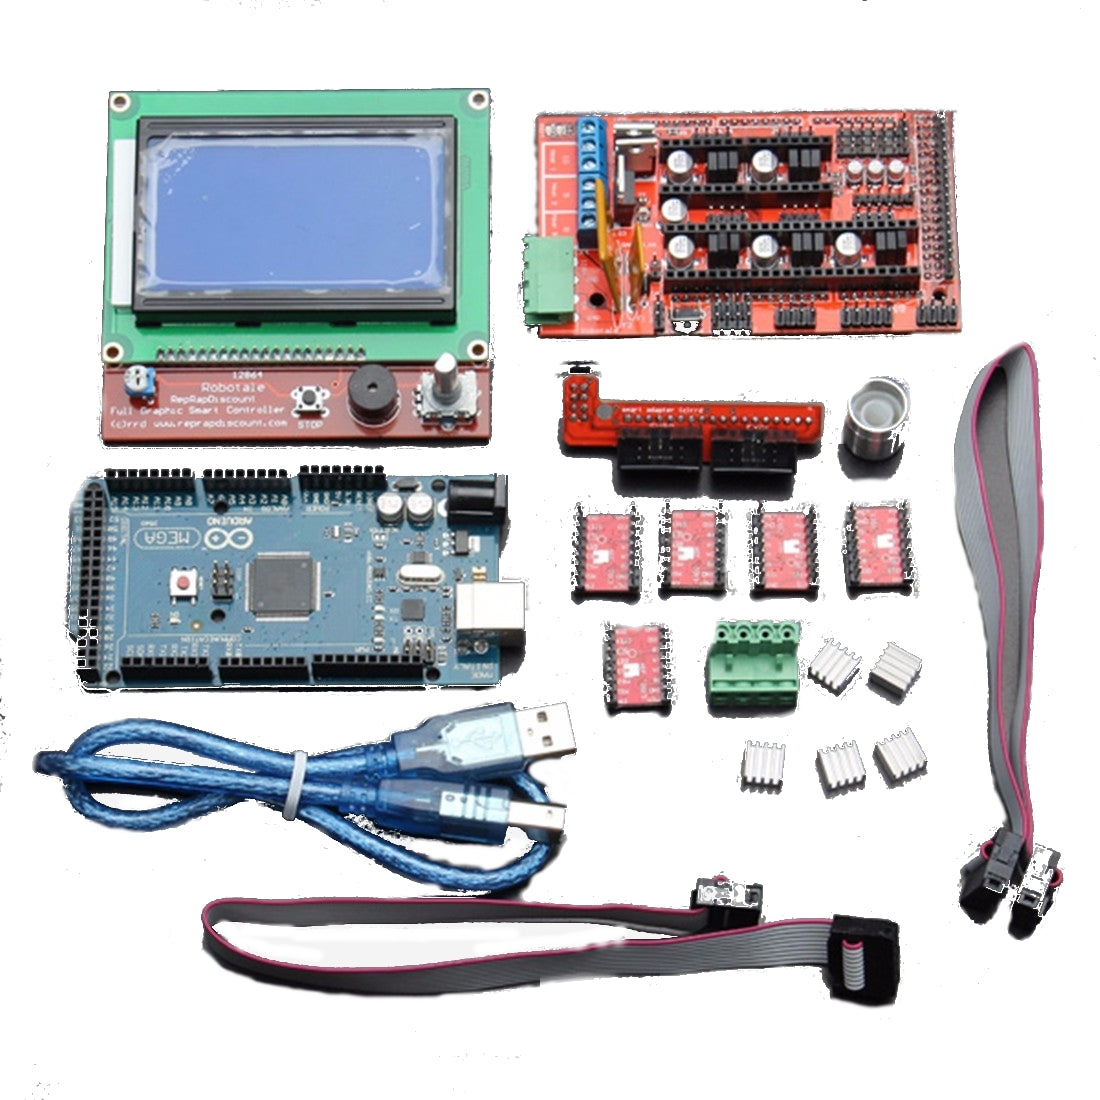 Geekcreit® LCD 12864 RAMPS 1.4 Board 2560 R3 Control Board A4988 Driver Kit For 3D Printer